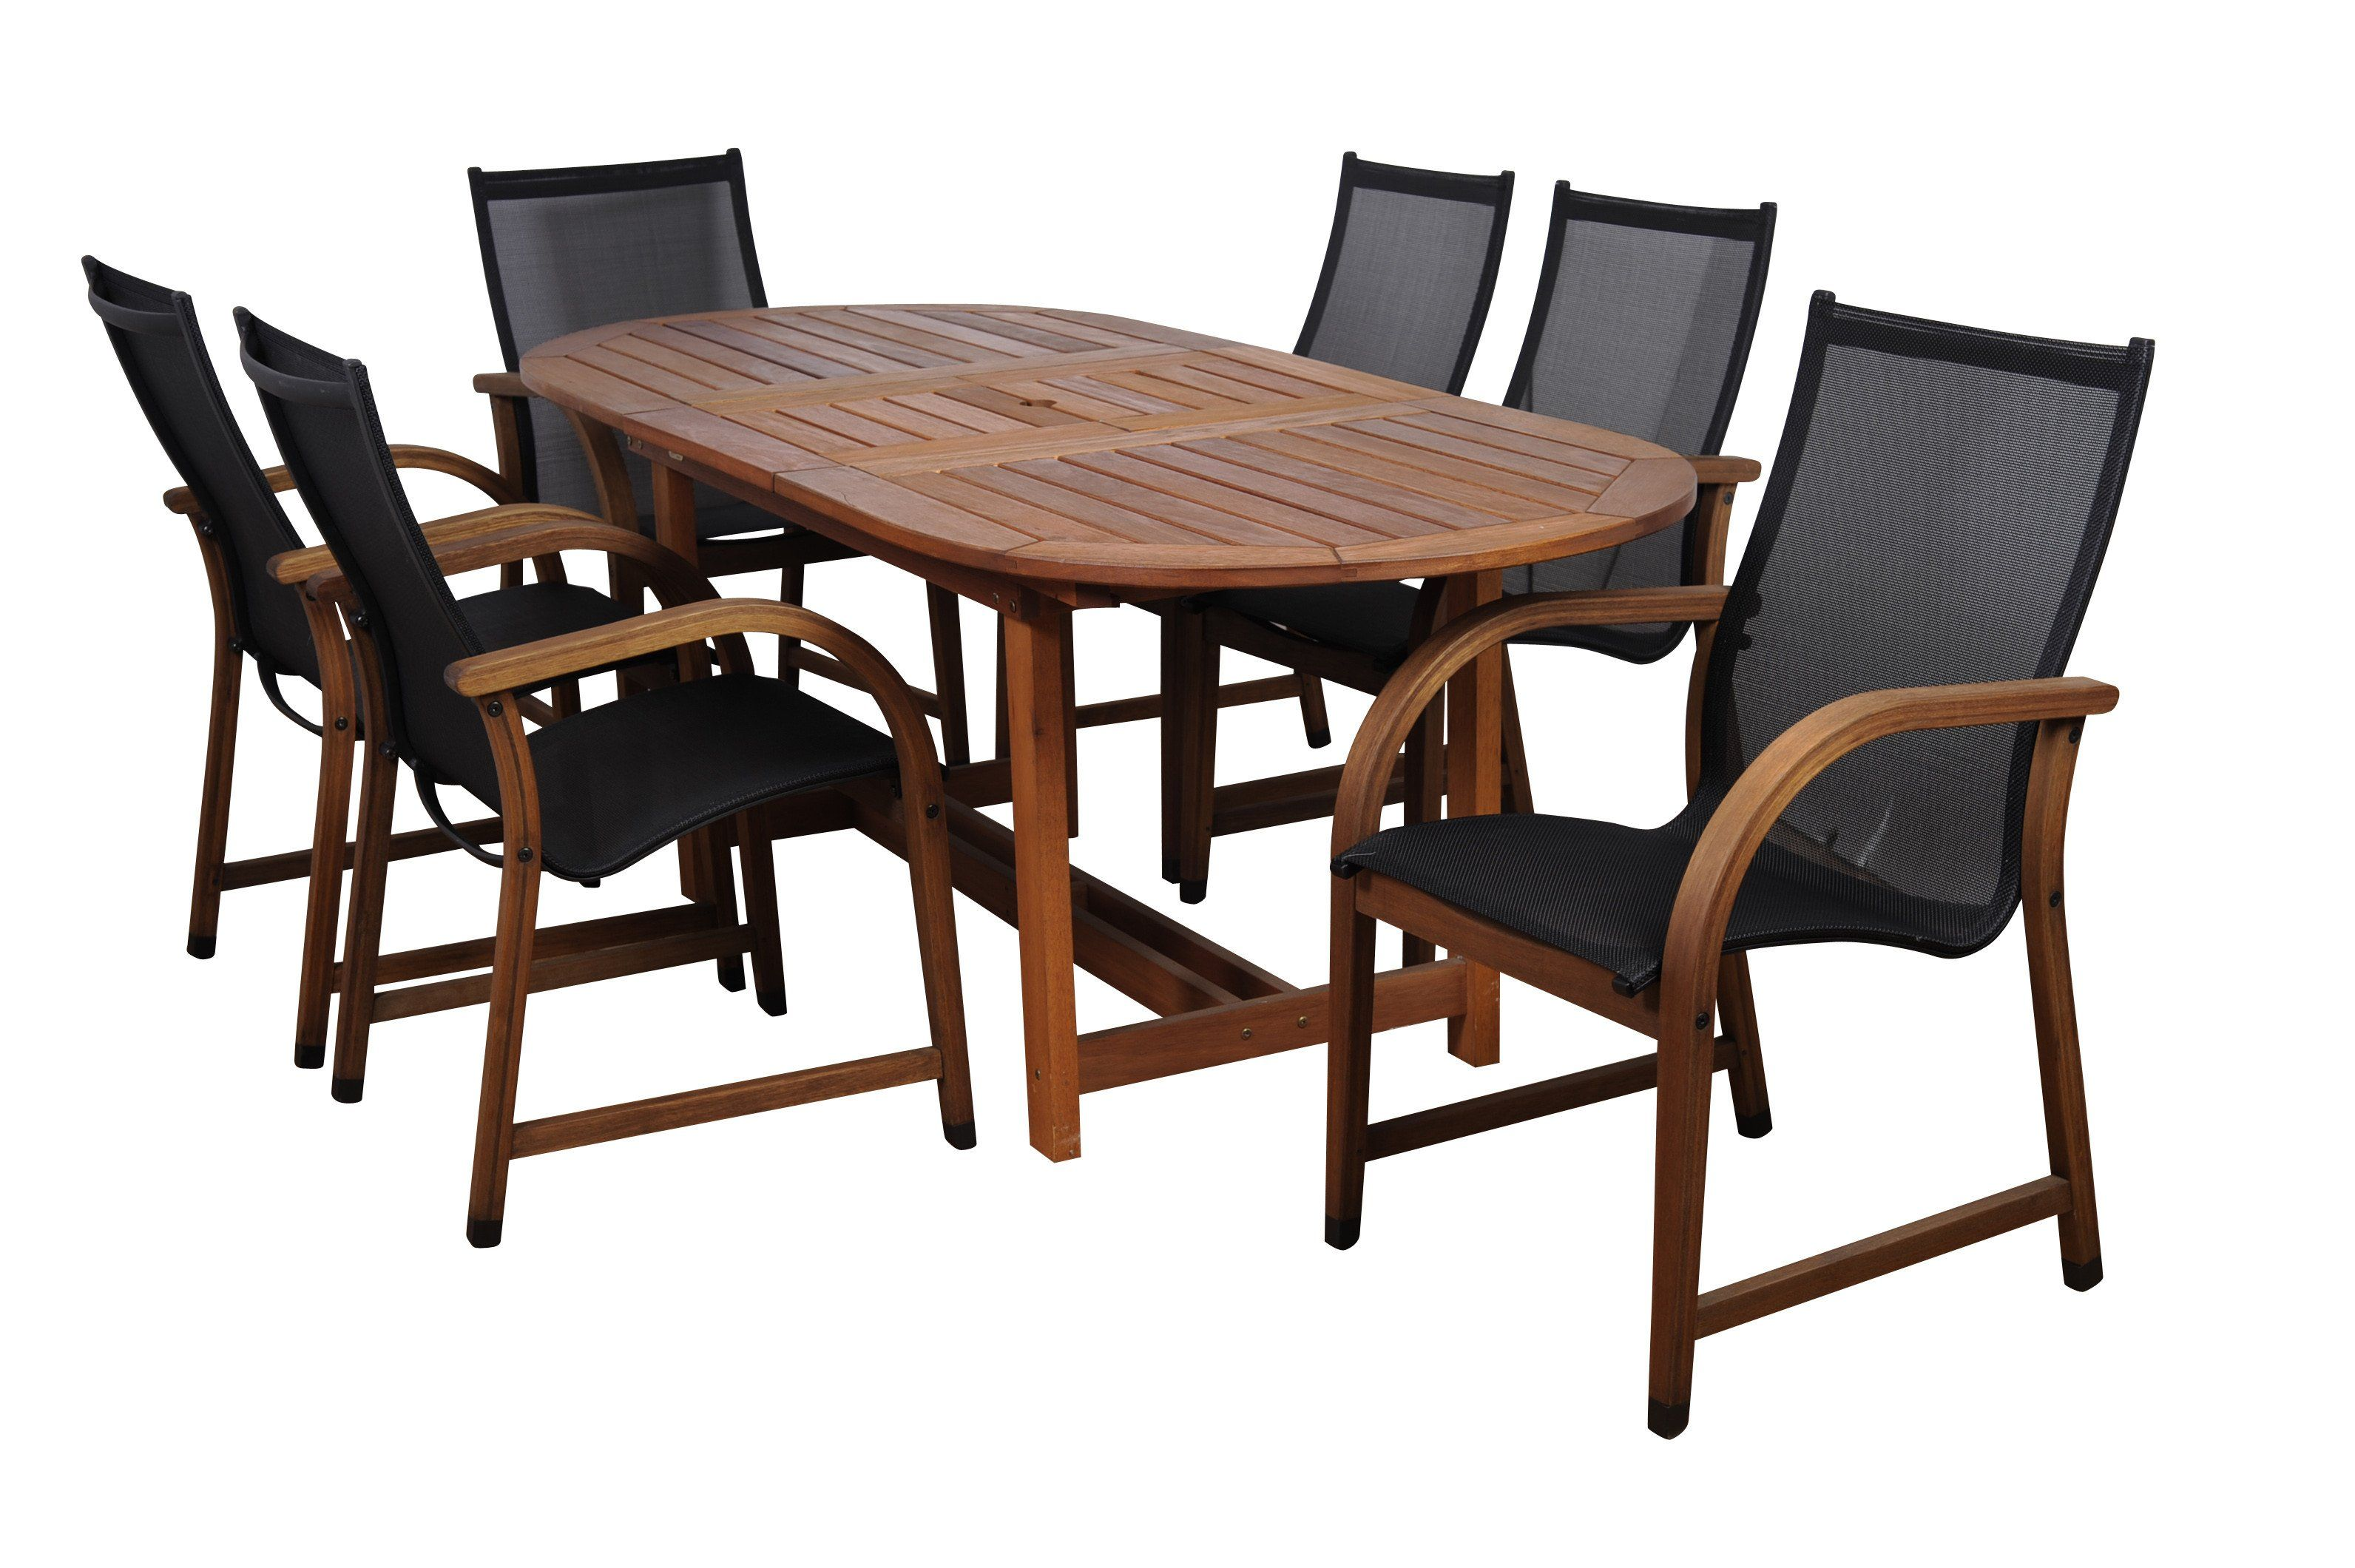 Excellent Bahamas 7 Piece Eucalyptus Extendable Oval Patio Dining Set Inzonedesignstudio Interior Chair Design Inzonedesignstudiocom